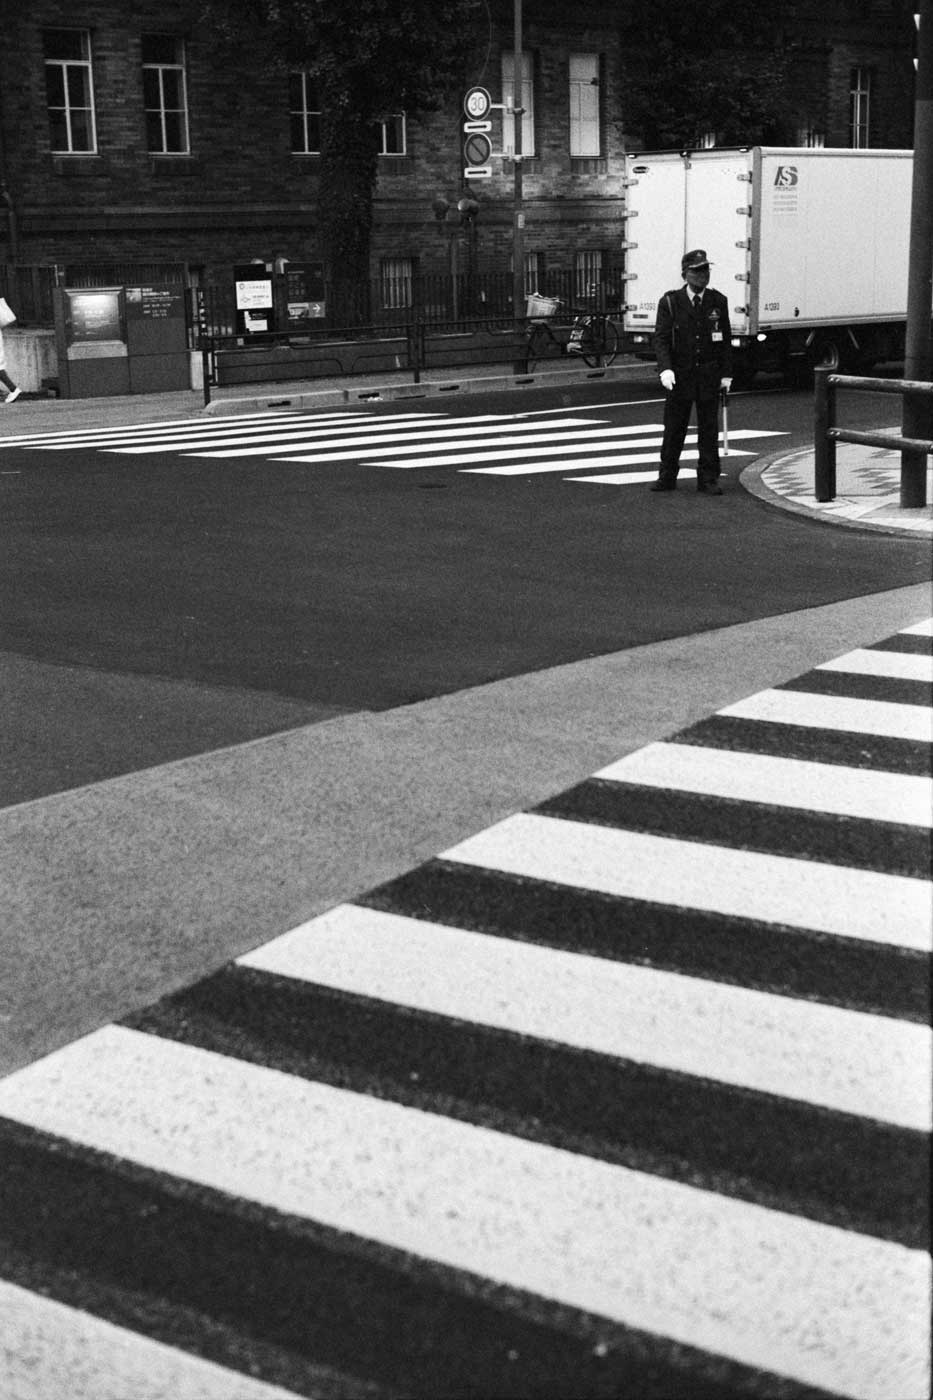 portfolio-we-have-seen-better-days-tahusa-japan-tokyo-street-project-blog-photography-film-Yanaka-Ginza-kodak-eastman-Double-X-400-summilux-50-asph-f1.4-50mm-cross-road-bw-stripes